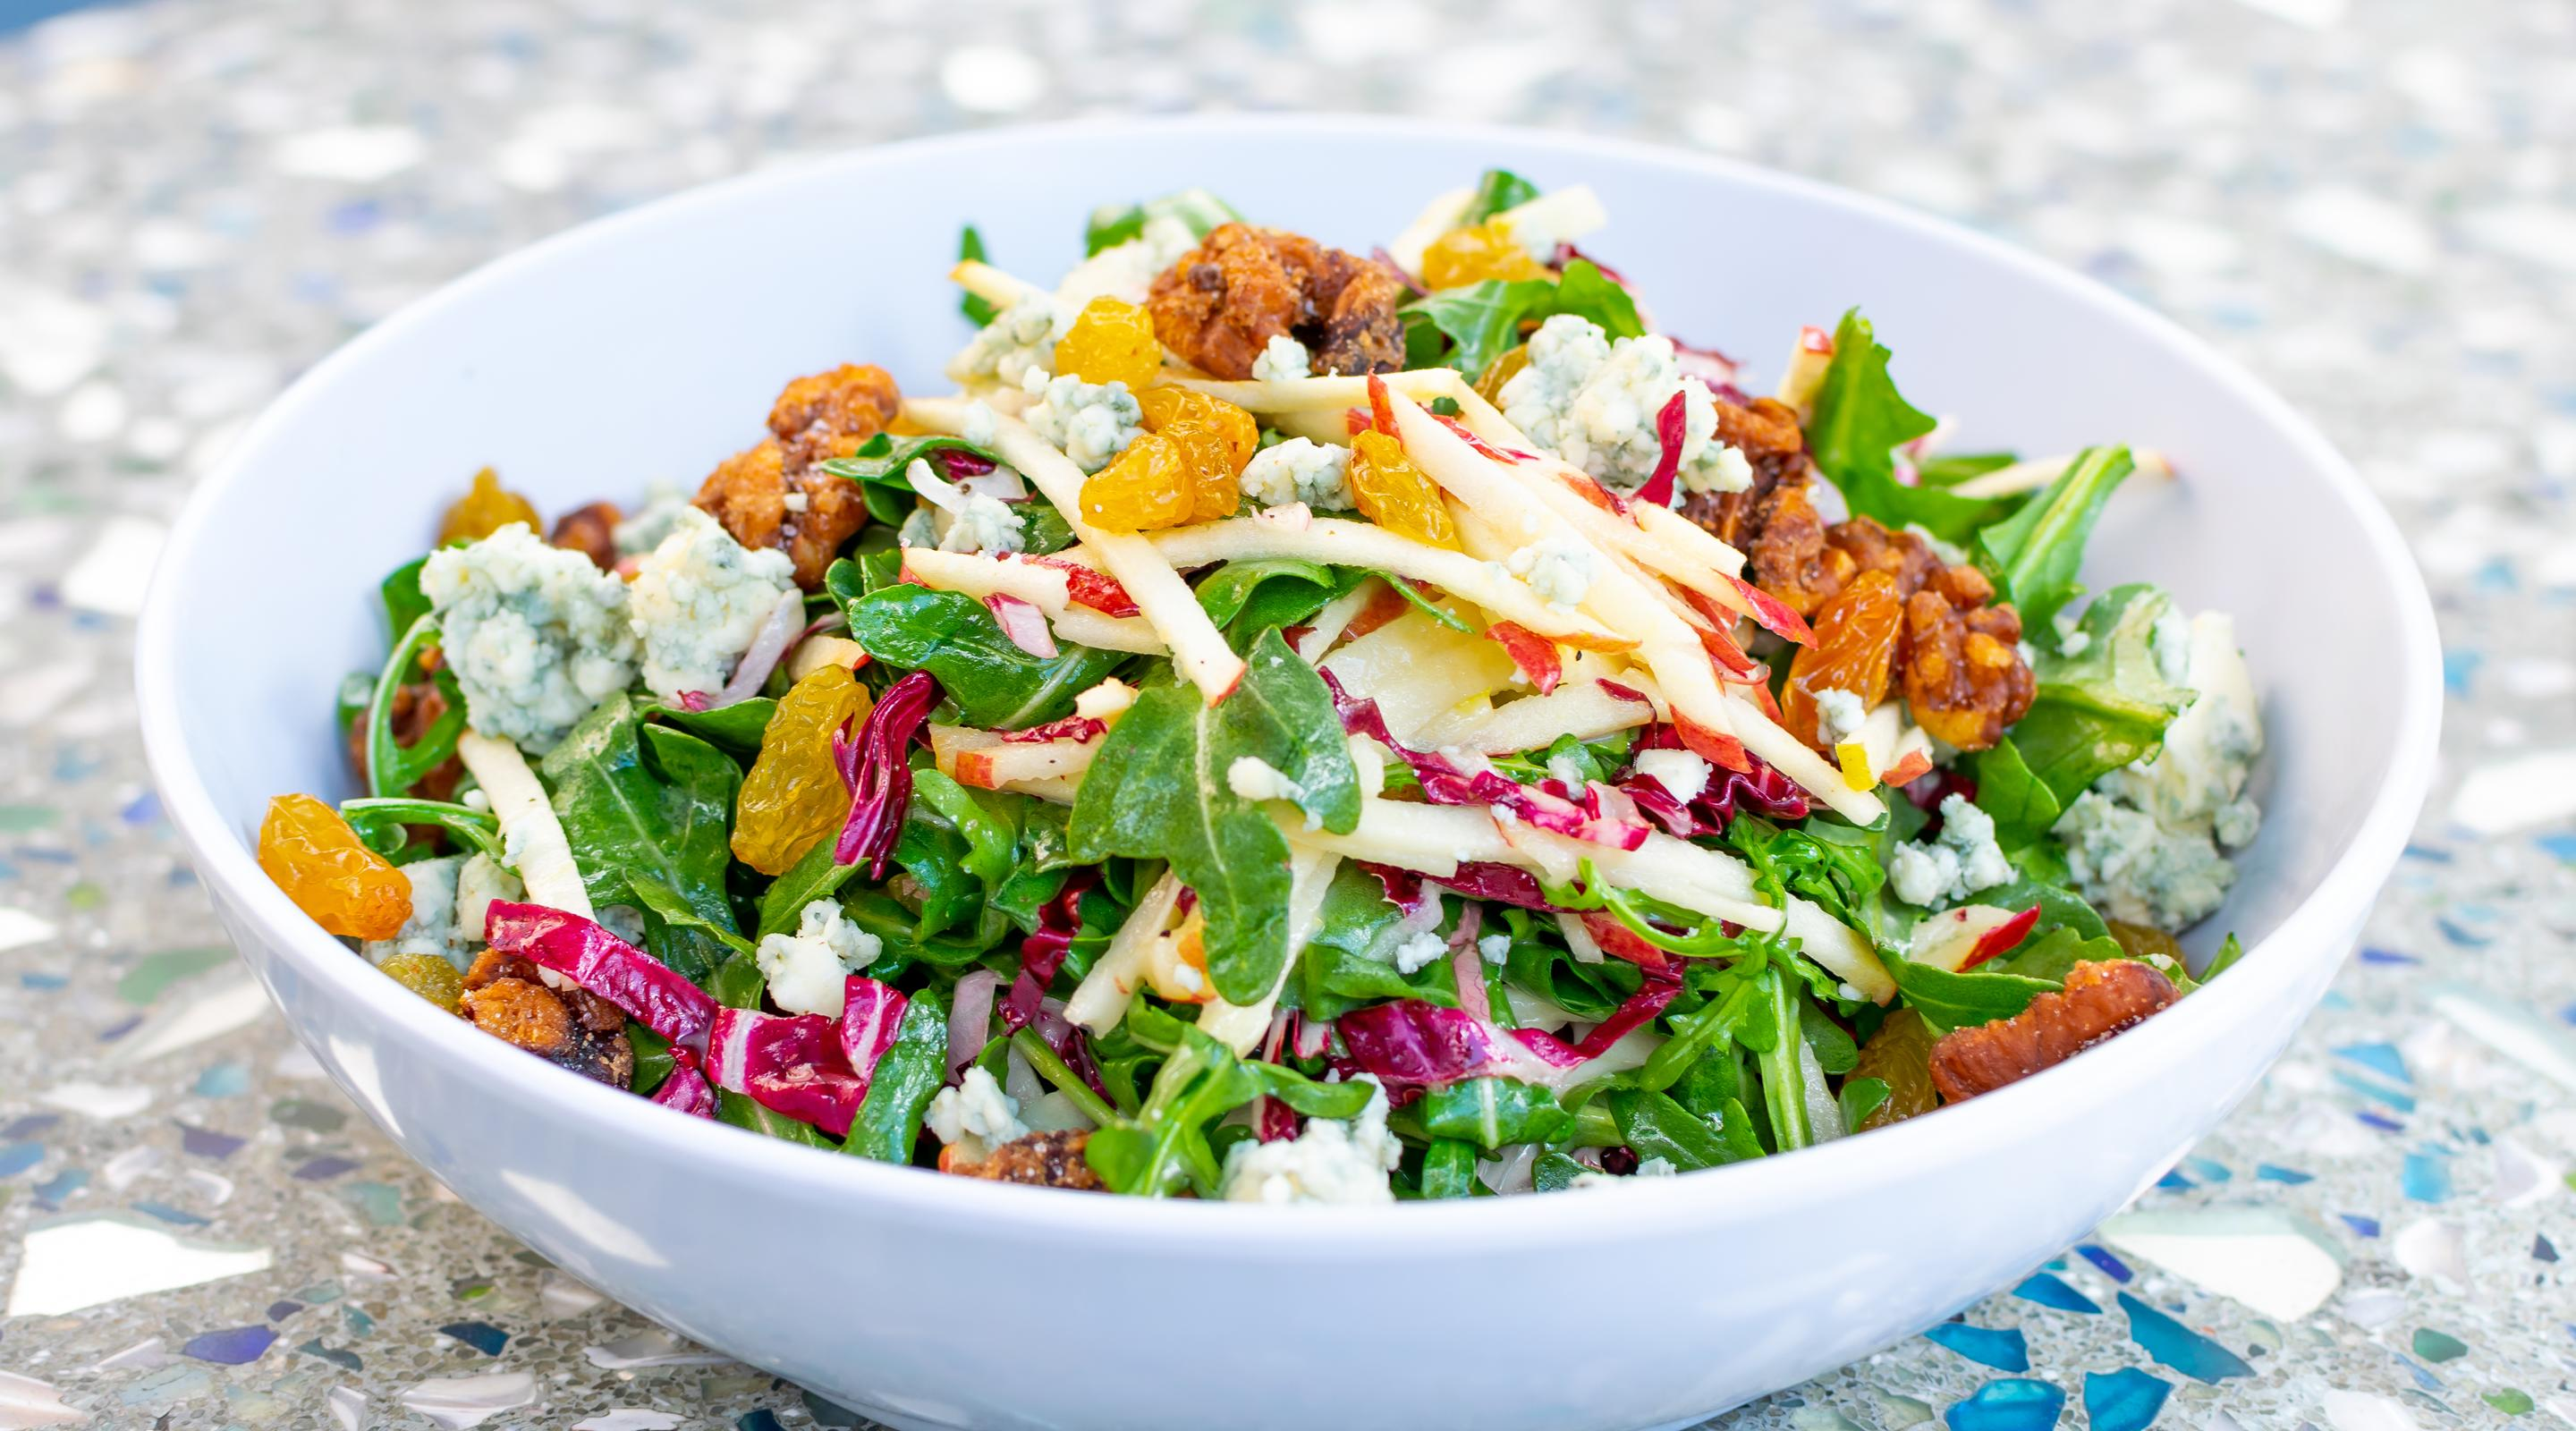 Enjoy a classic Arugula & Apple salad next to The Mirage pool for a truly unforgettable experience.